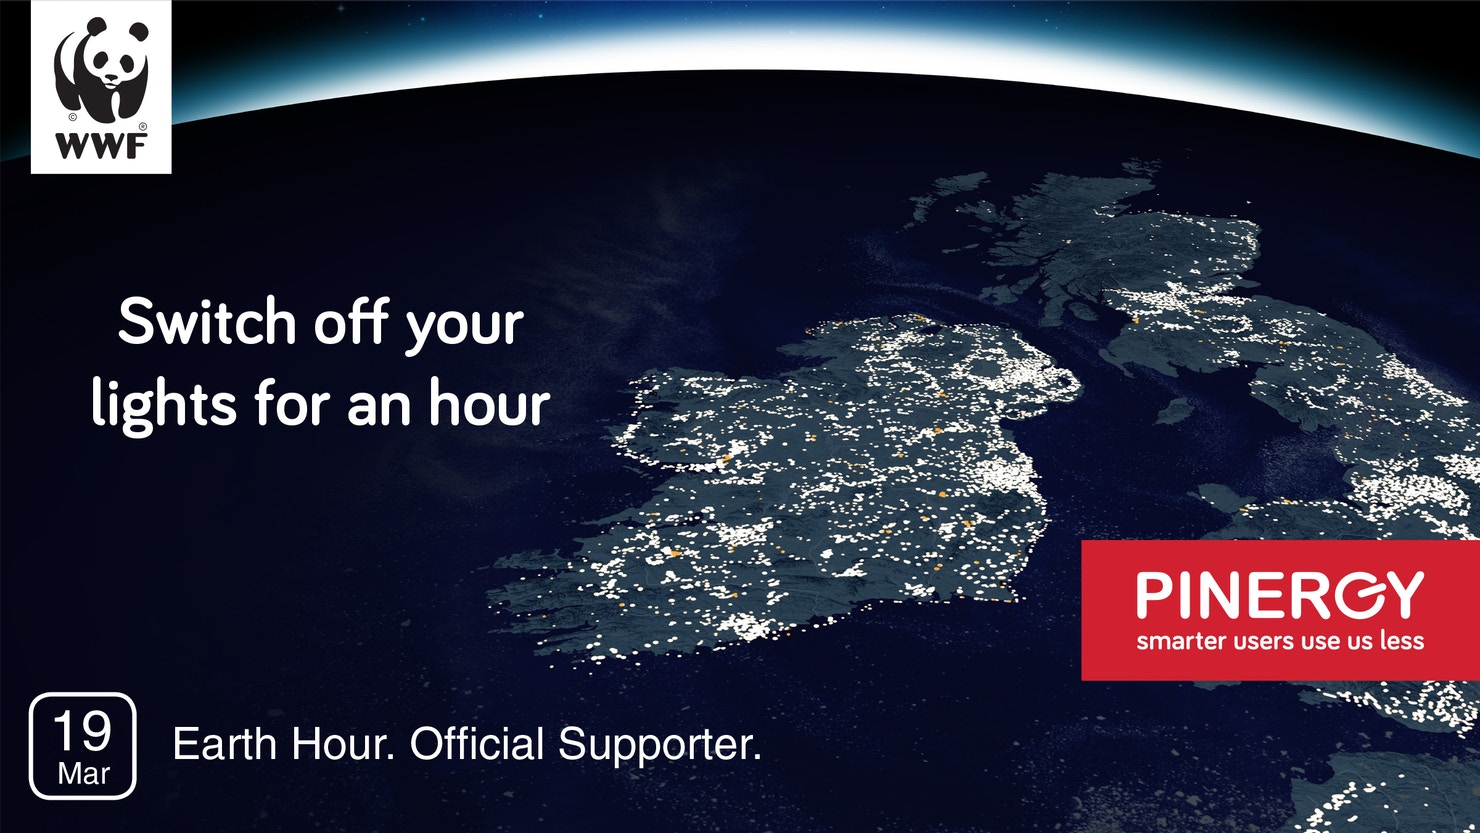 Pinergy proudly supports earth hour